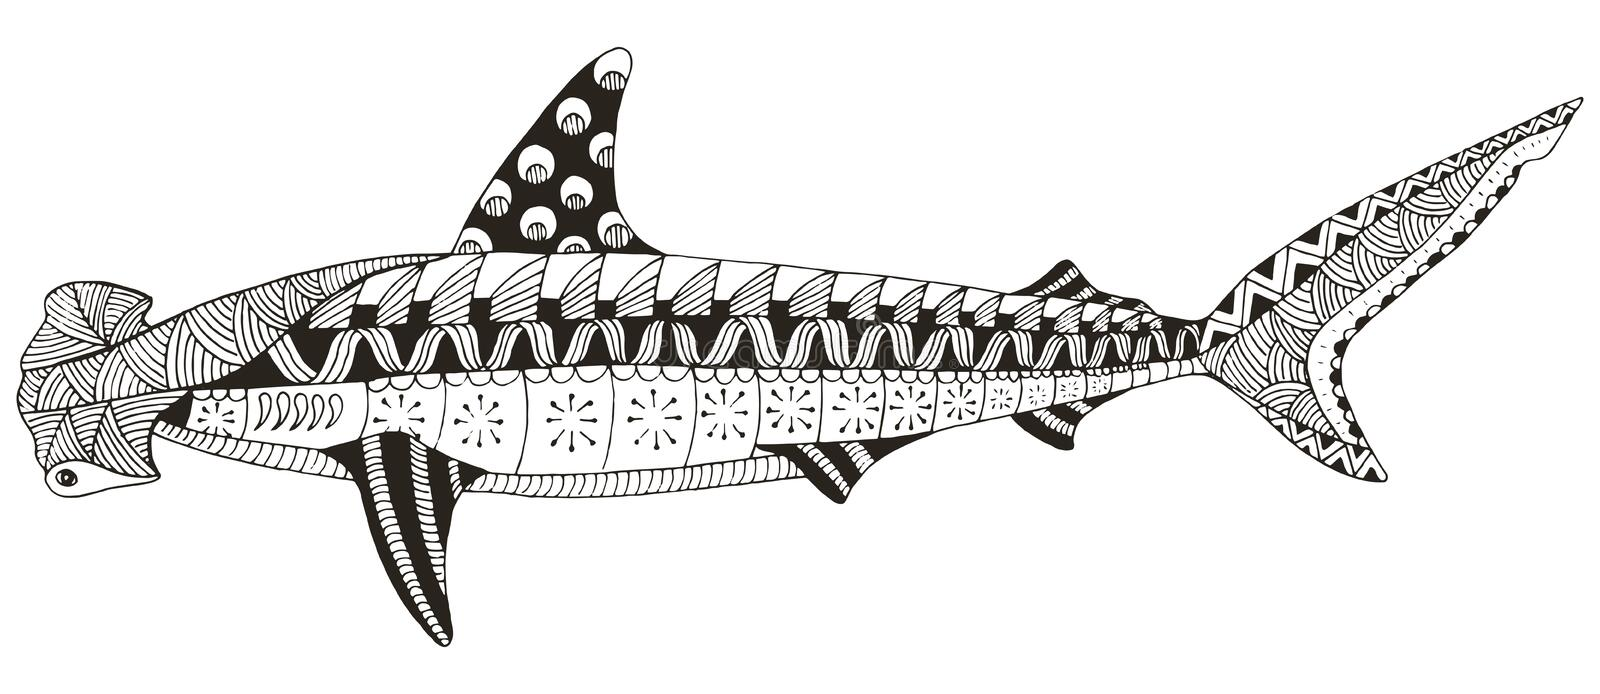 Le zentangle de requin de poisson marteau a stylis dirige illustration patte illustration de - Dessin poisson stylise ...